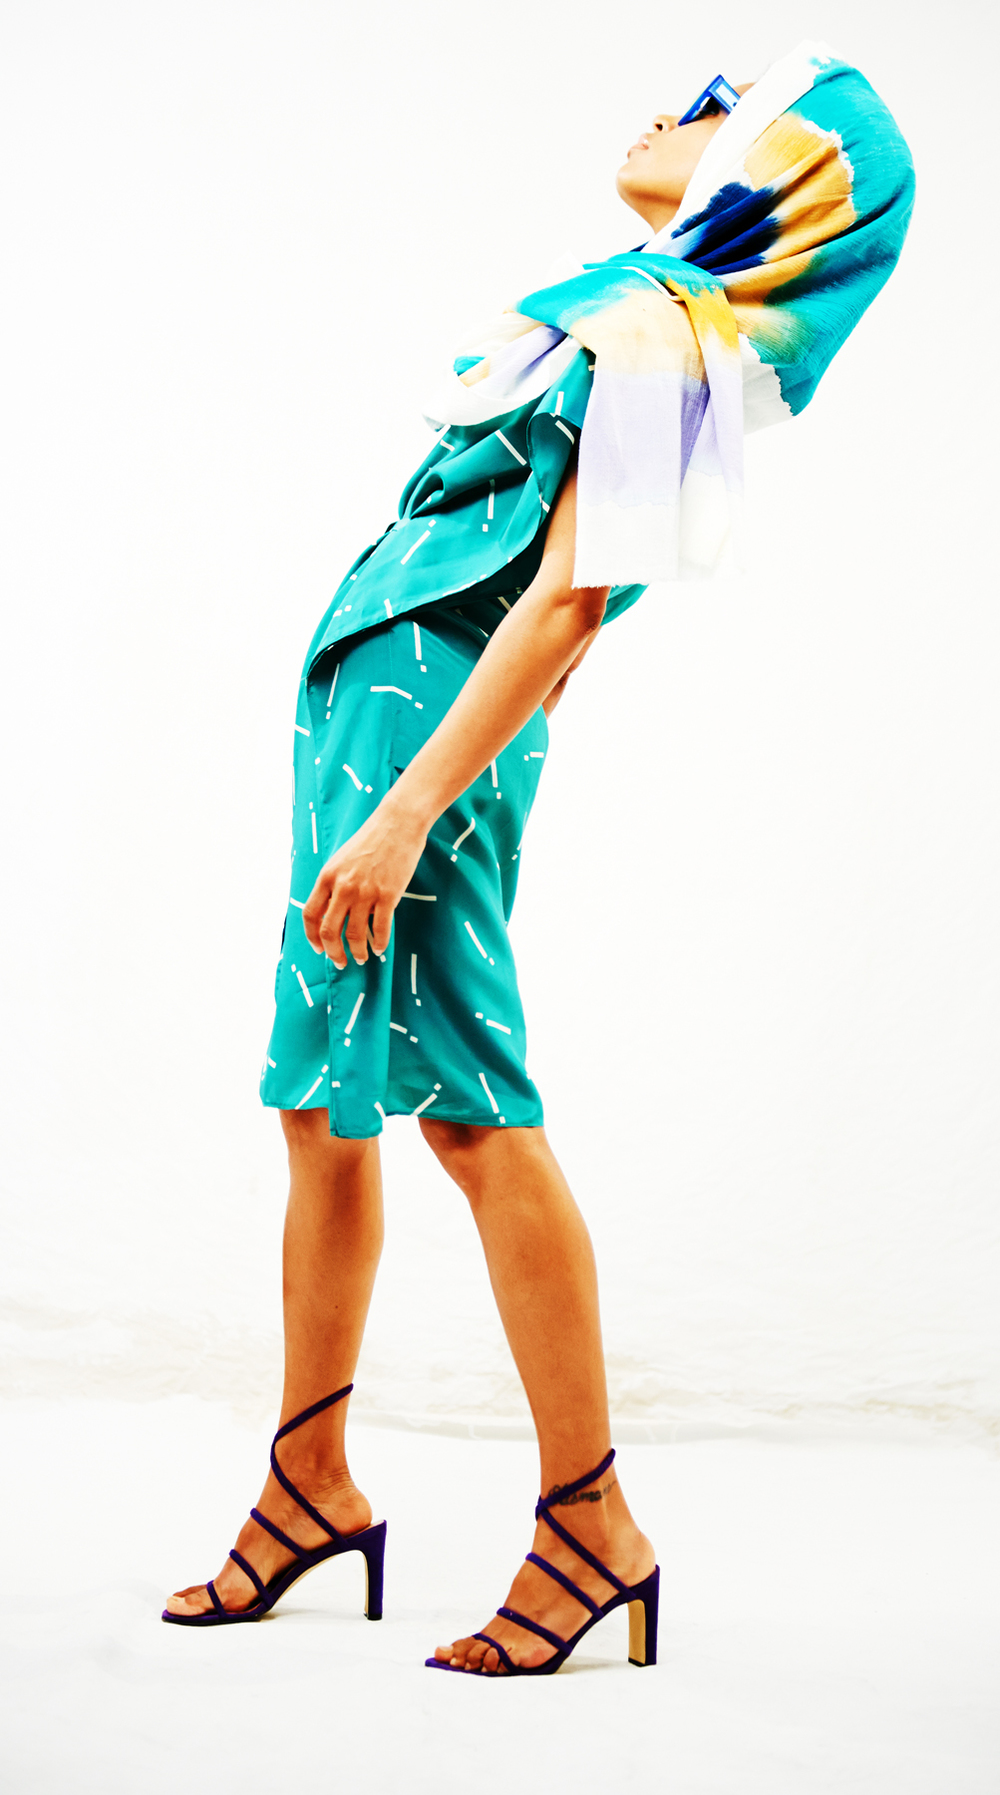 Linea Germania Dress and Scarf, Mengly Hernandez 6.jpg